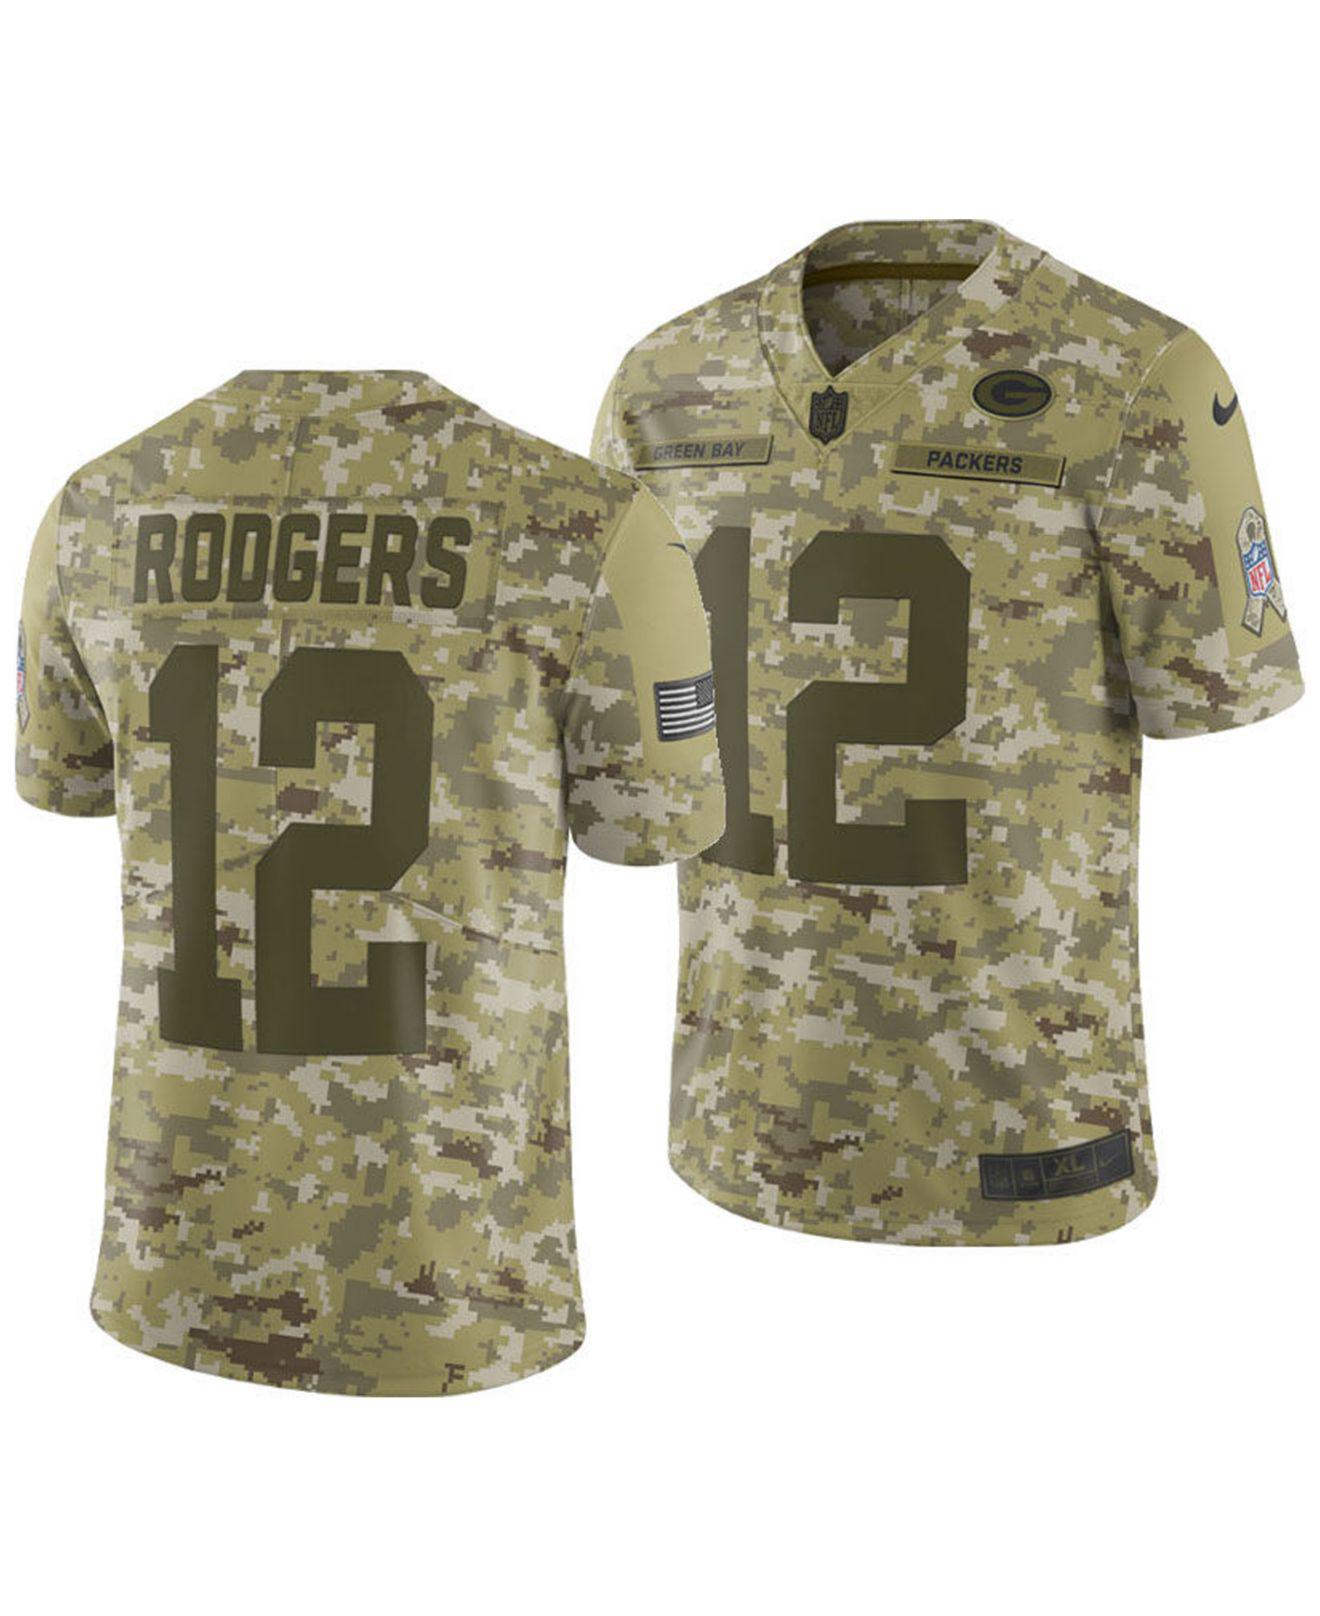 Aaron Rodgers Green Bay Packers Salute To Service Jersey 2018